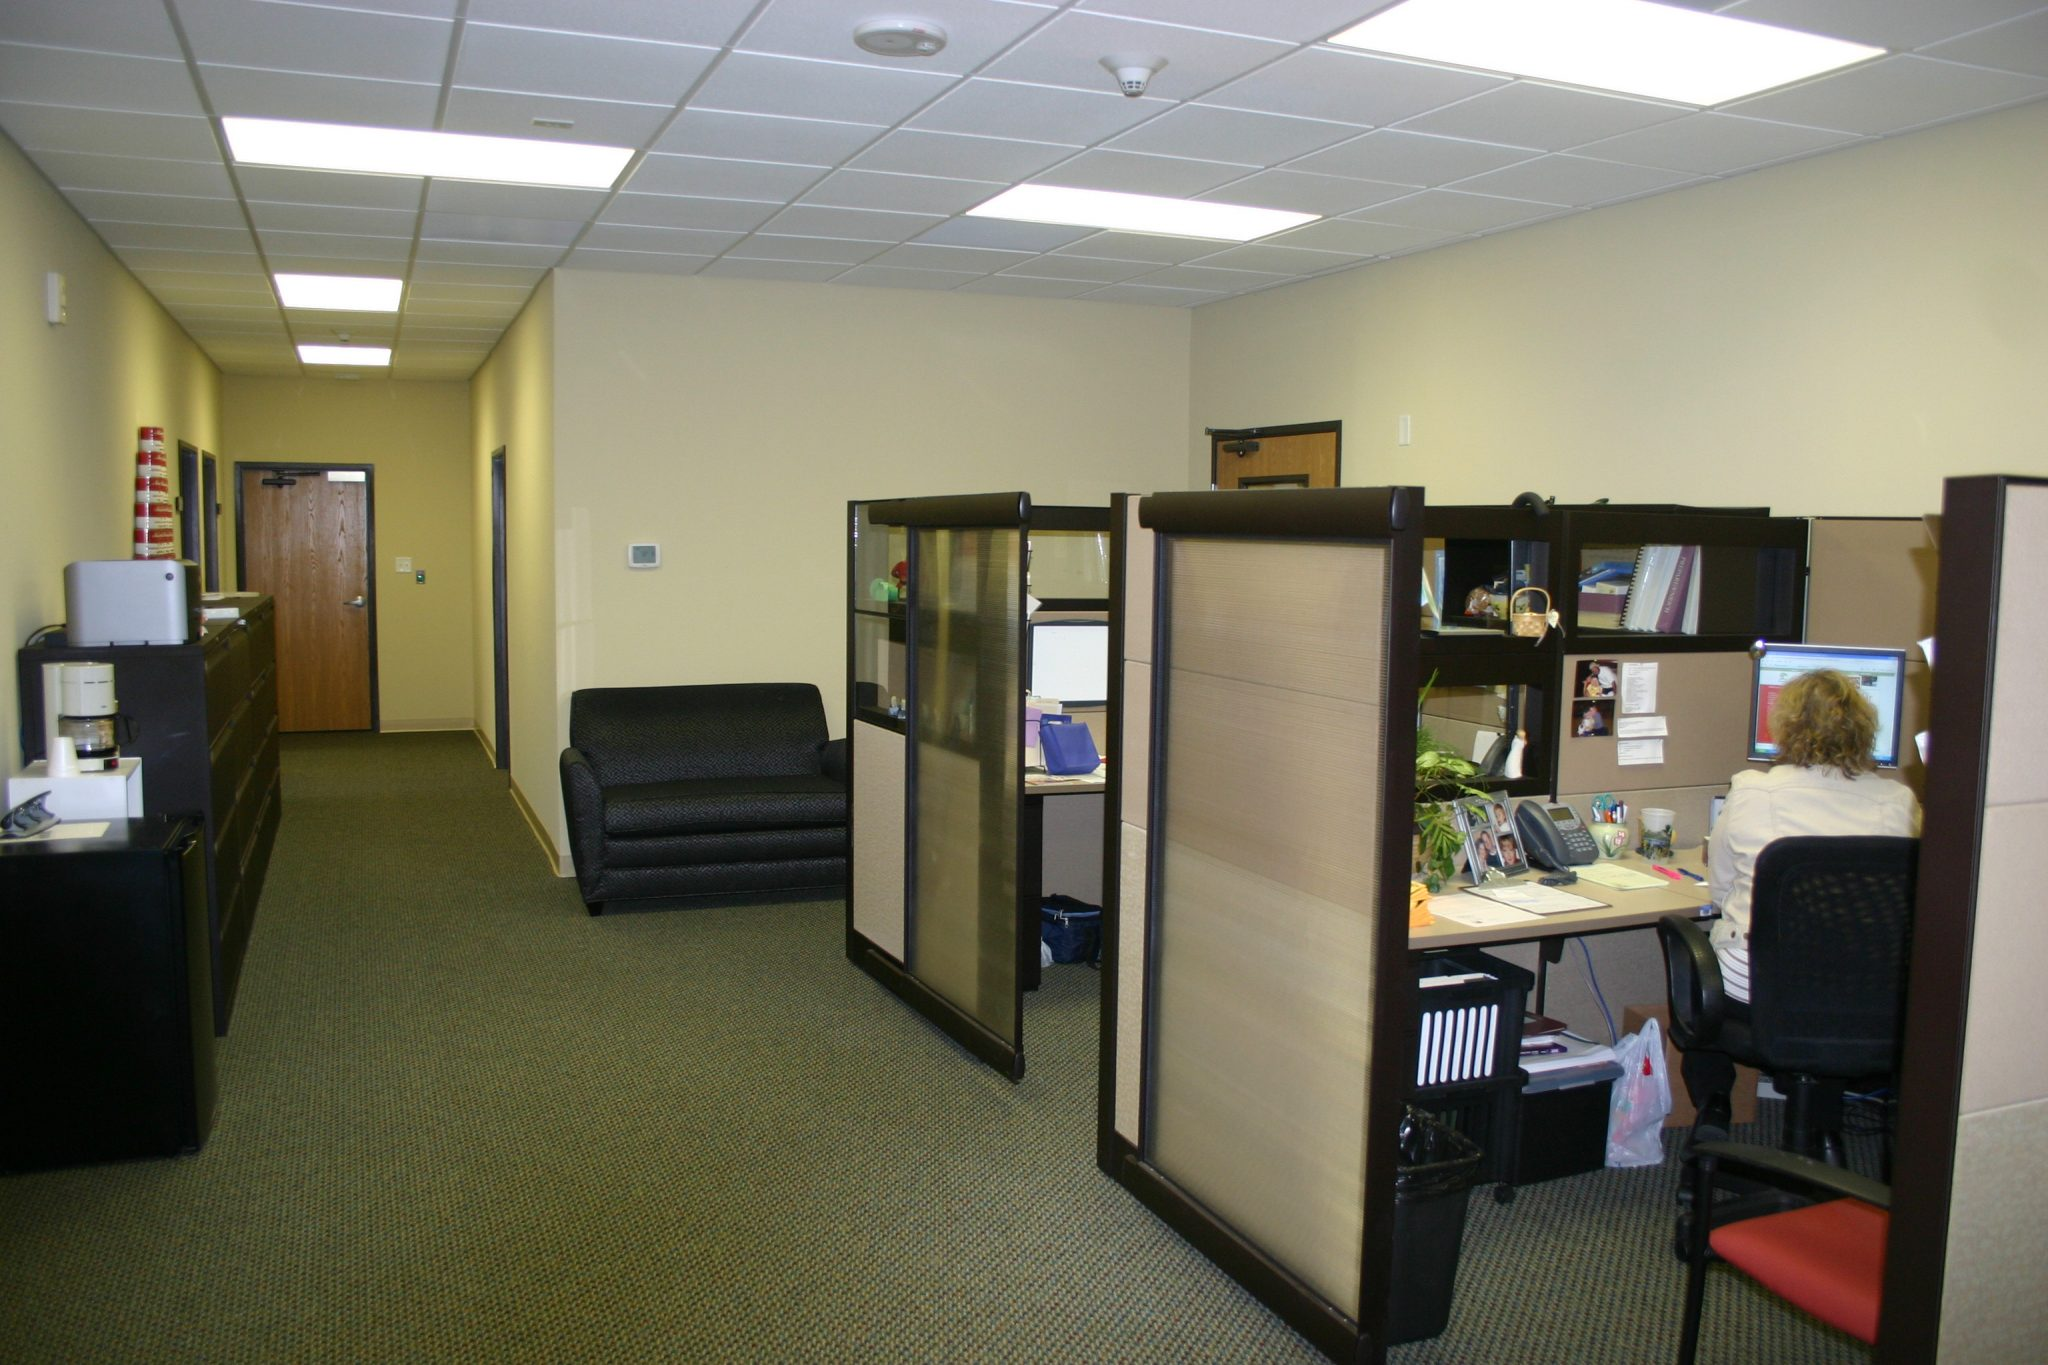 Large Church Admin Office Space with Cubicles